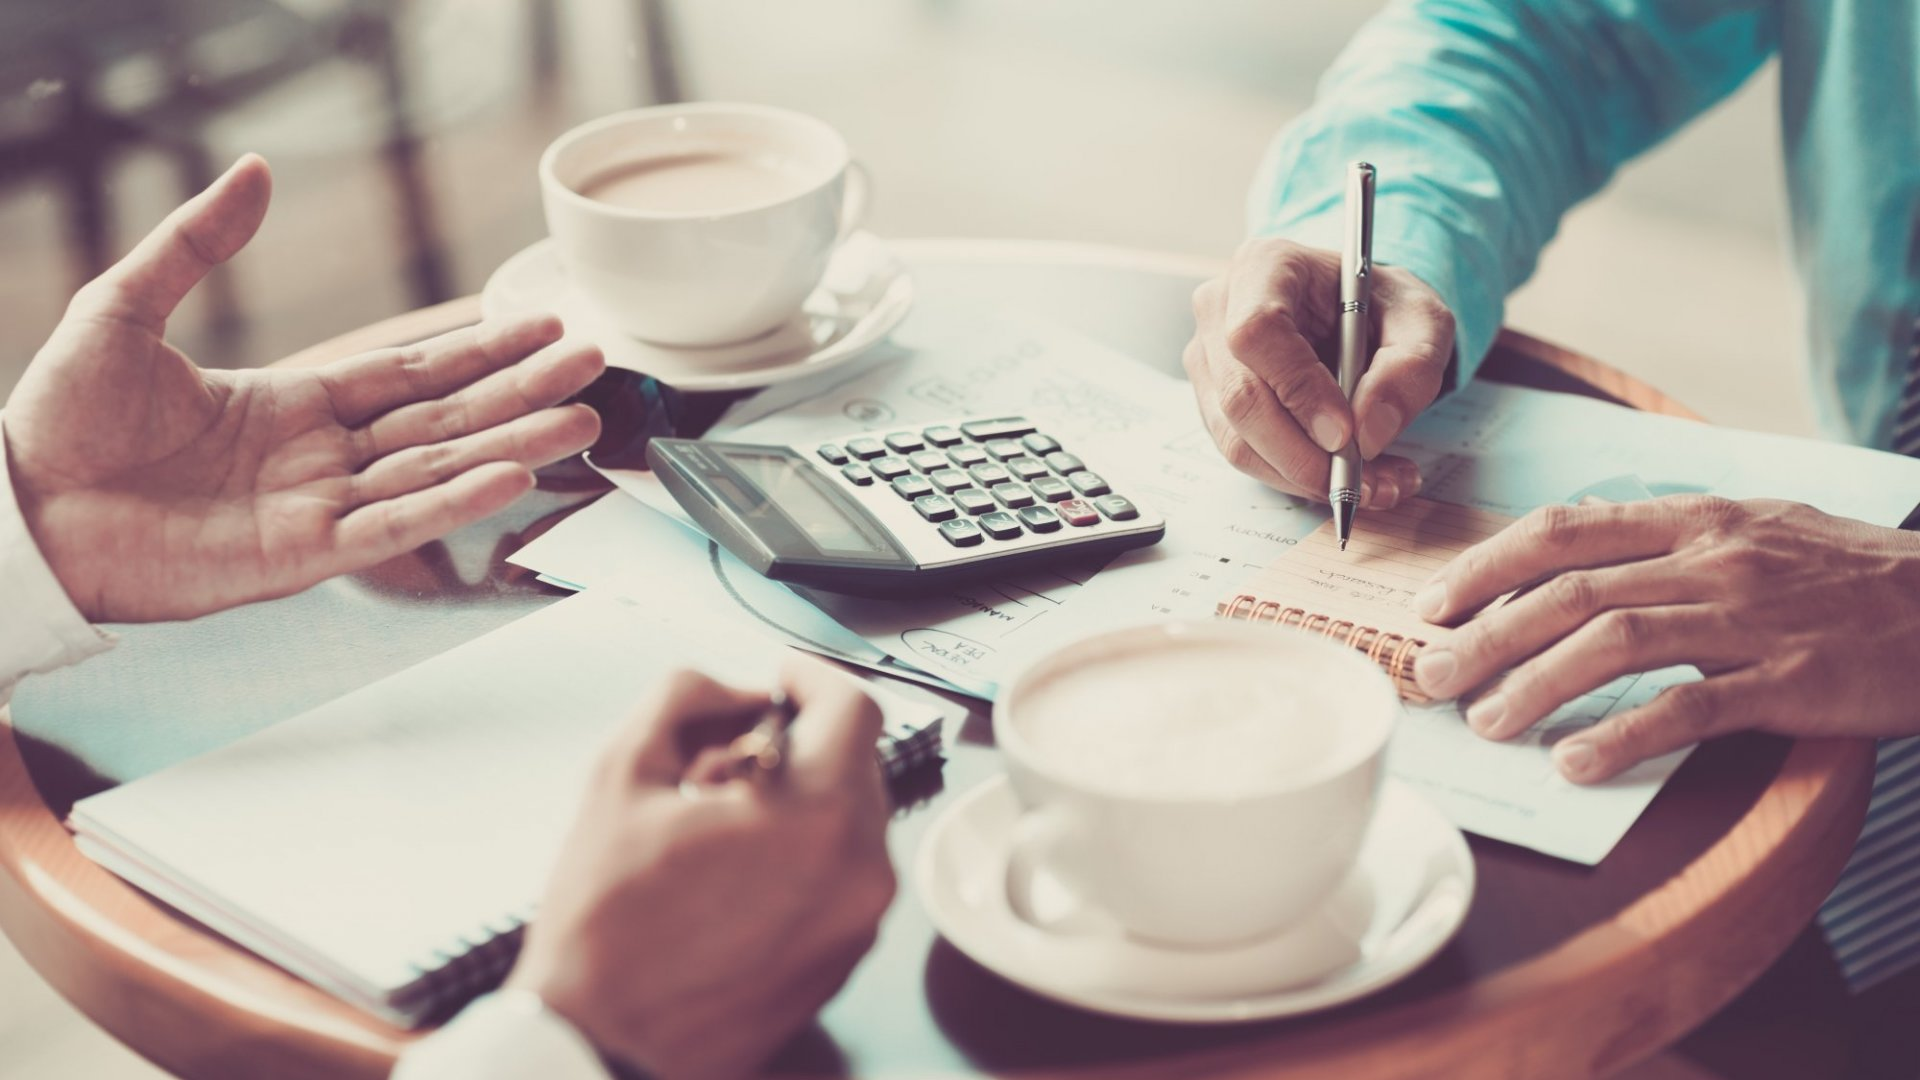 The 1 Thing You Need to Do to Make Your Freelance Business Wildly Successful